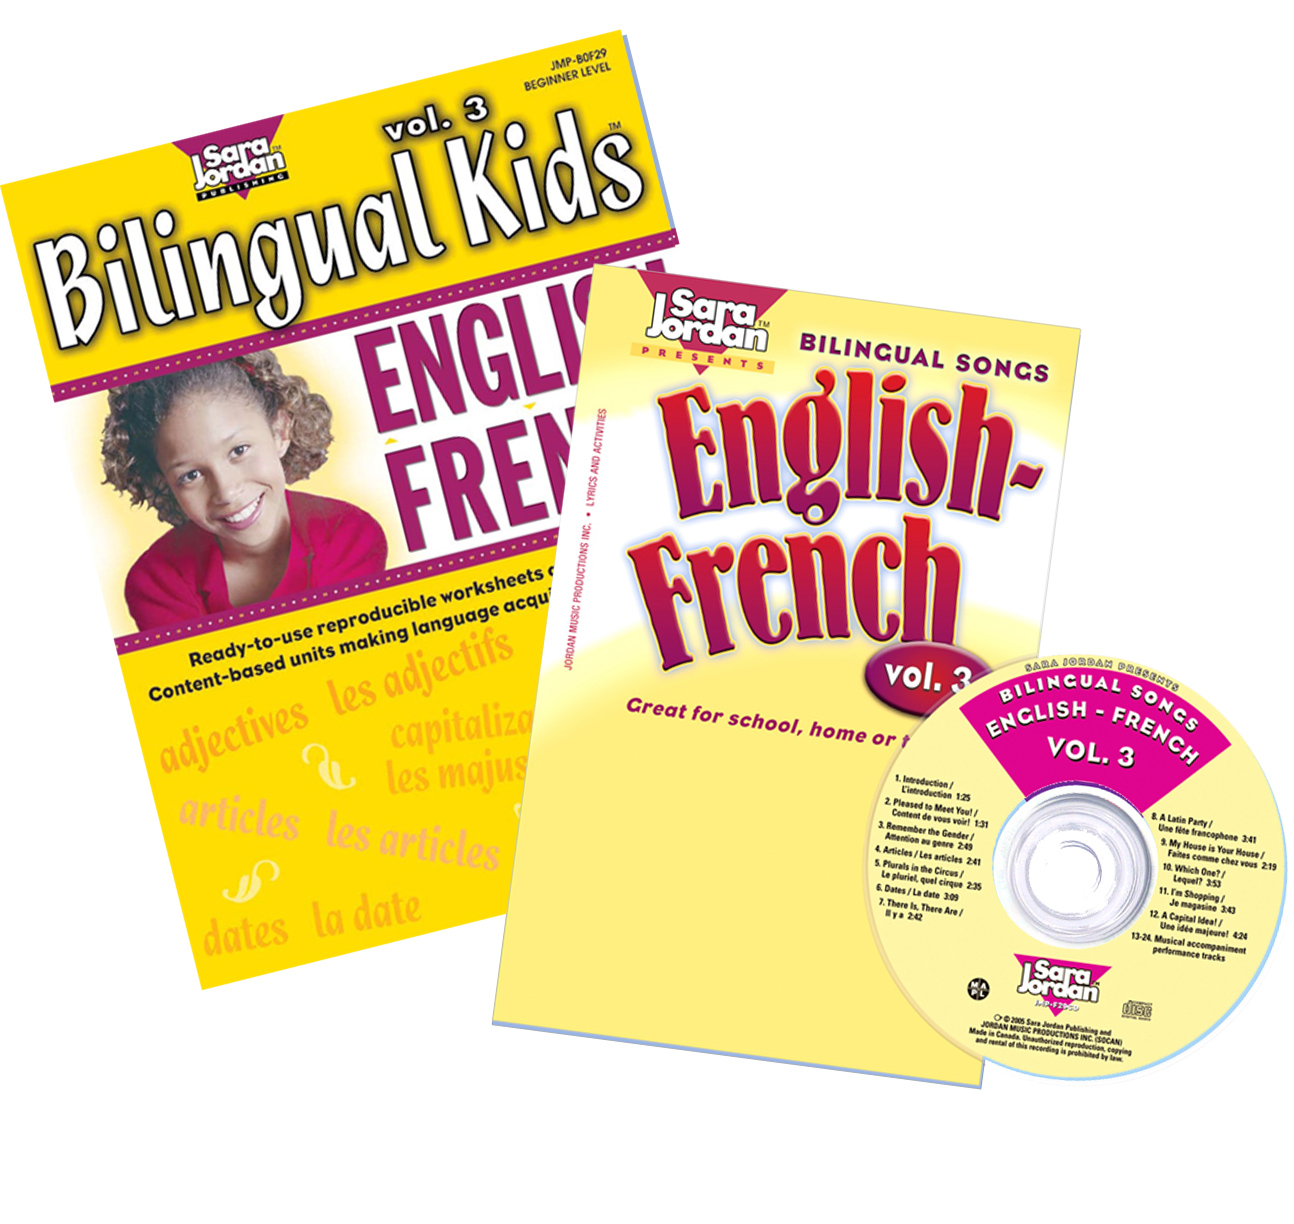 Bilingual Songs: English-French Vol. 3 CD/Book Download